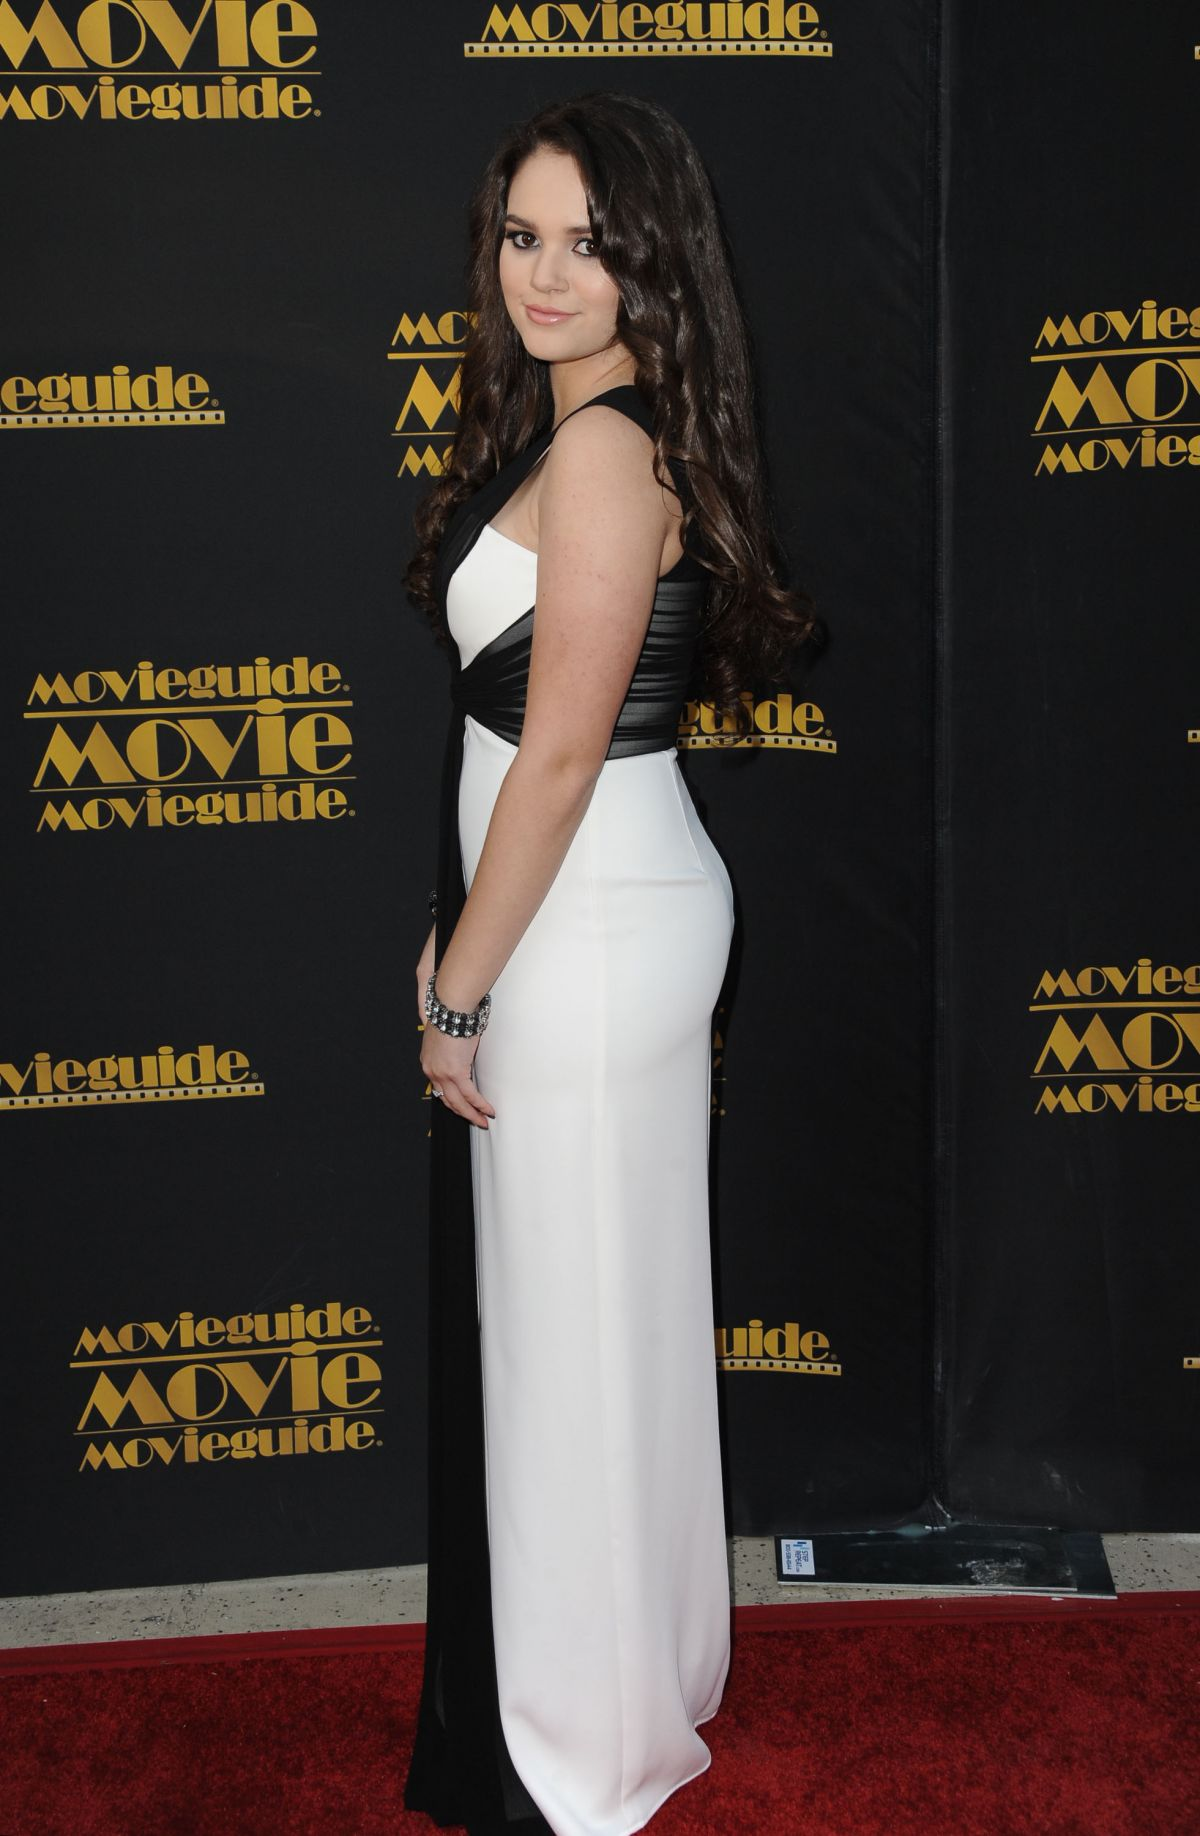 c701e89ac03 madison-pettis-at-2015-movieguide-awards-in-universal-city 6.jpg (1200×1836)